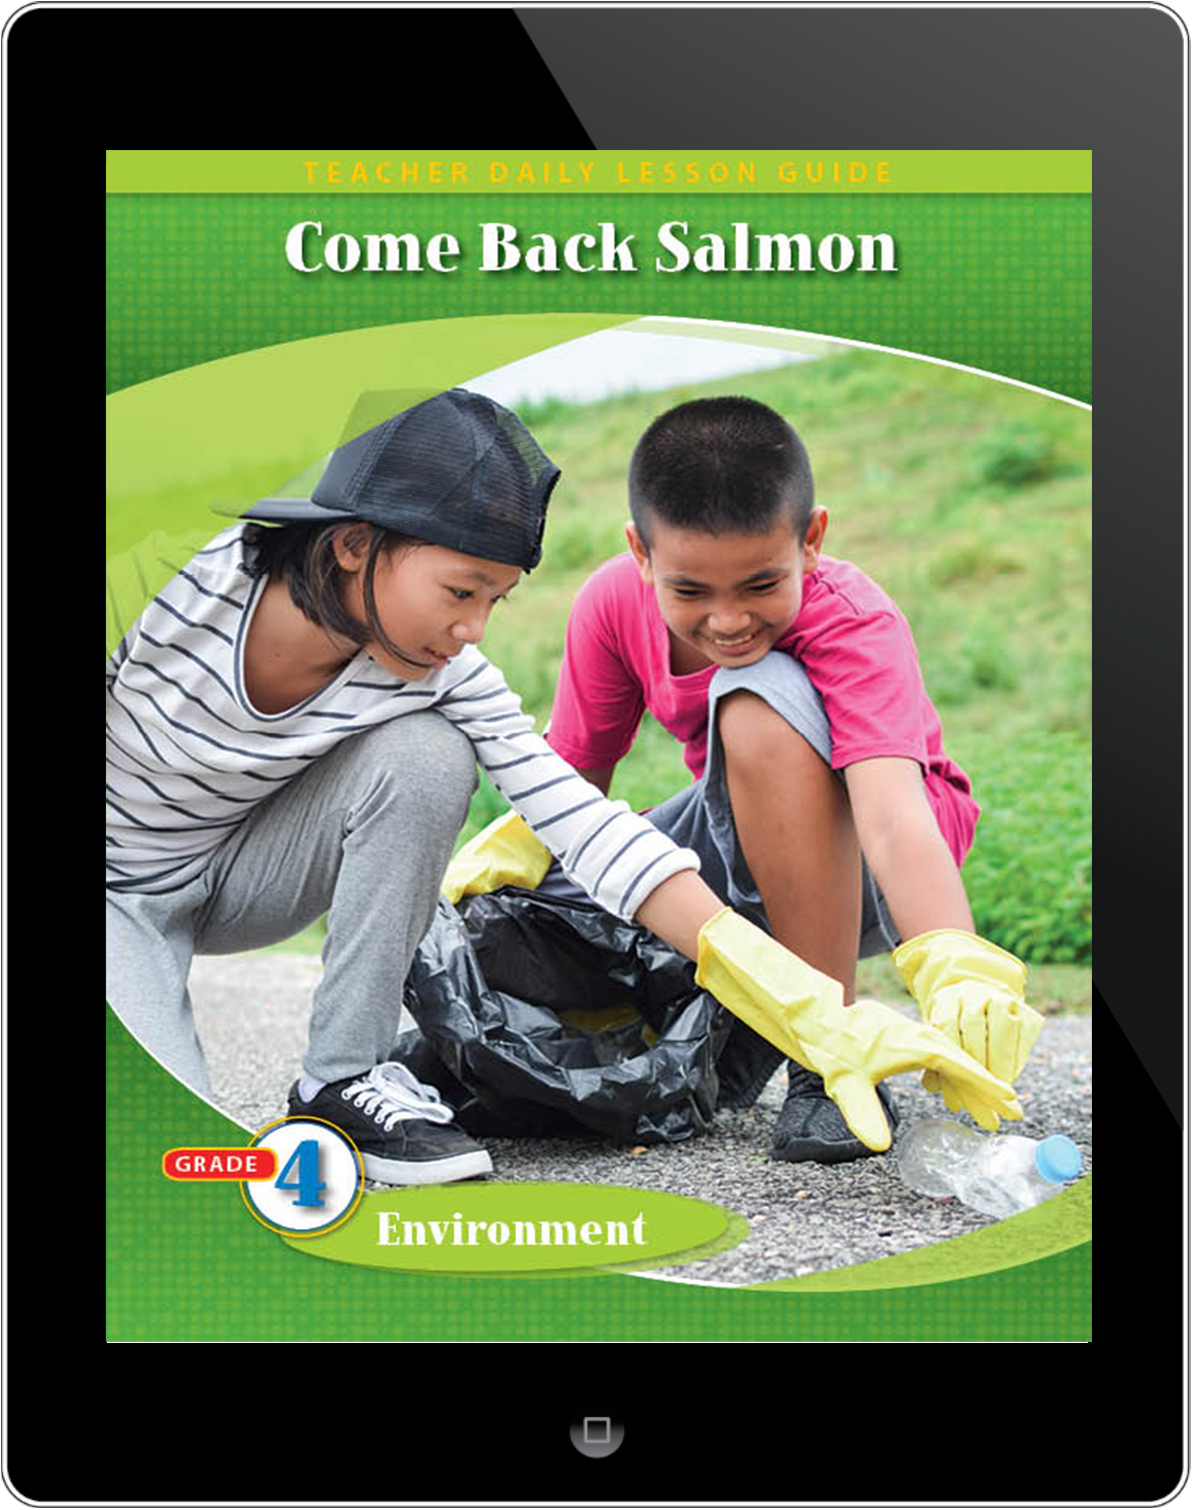 Pathways2.0 Grade 4 Environment Unit: Come Back Salmon Daily Lesson Guide 5 Year License